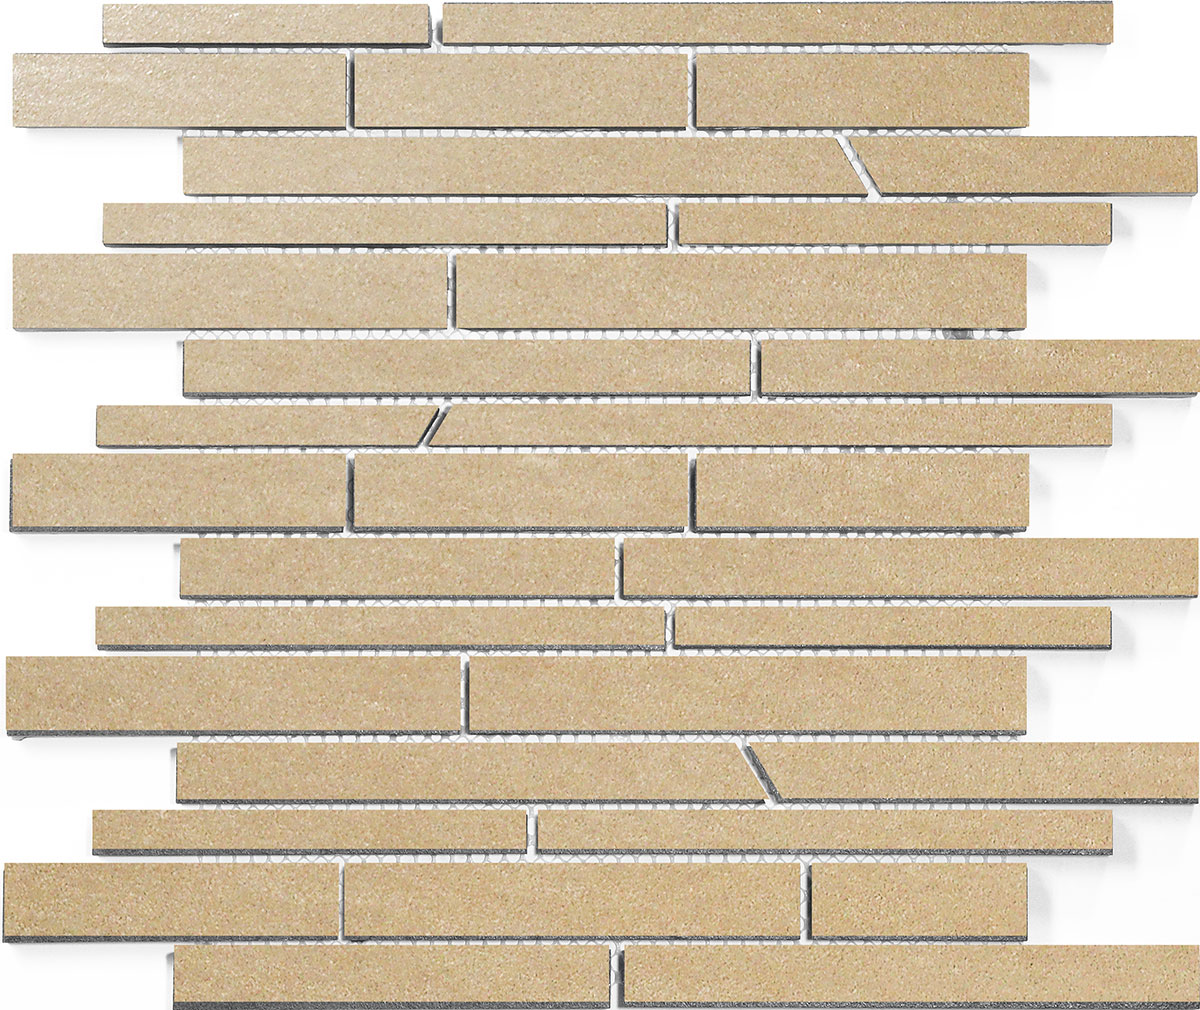 PICCADILLY beige Mauerverband Image